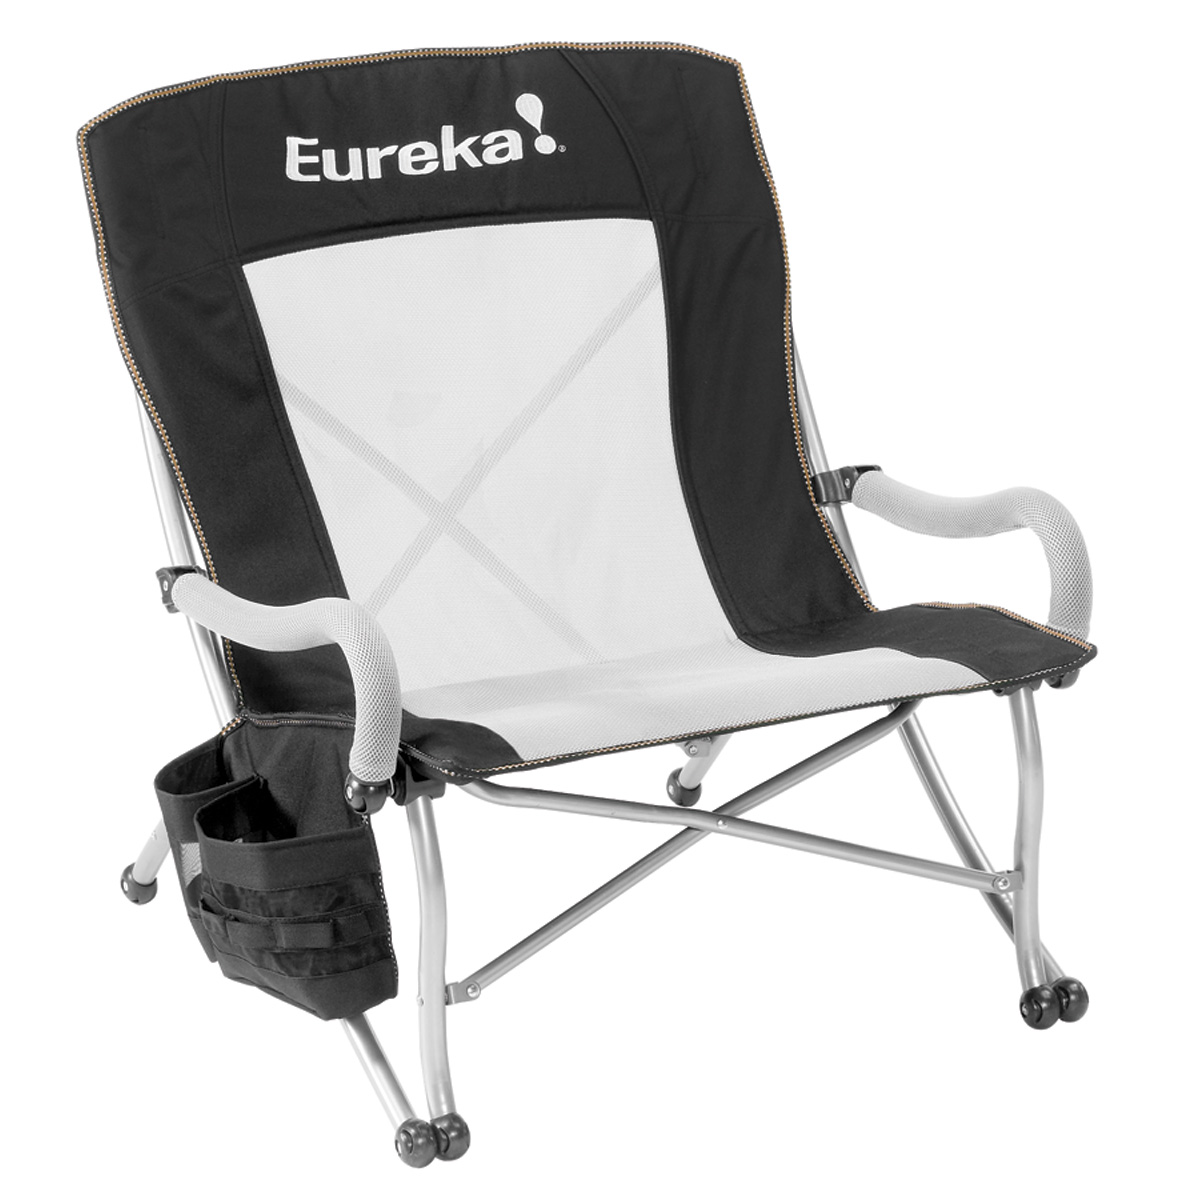 Curvy Low Rider Camp Chair